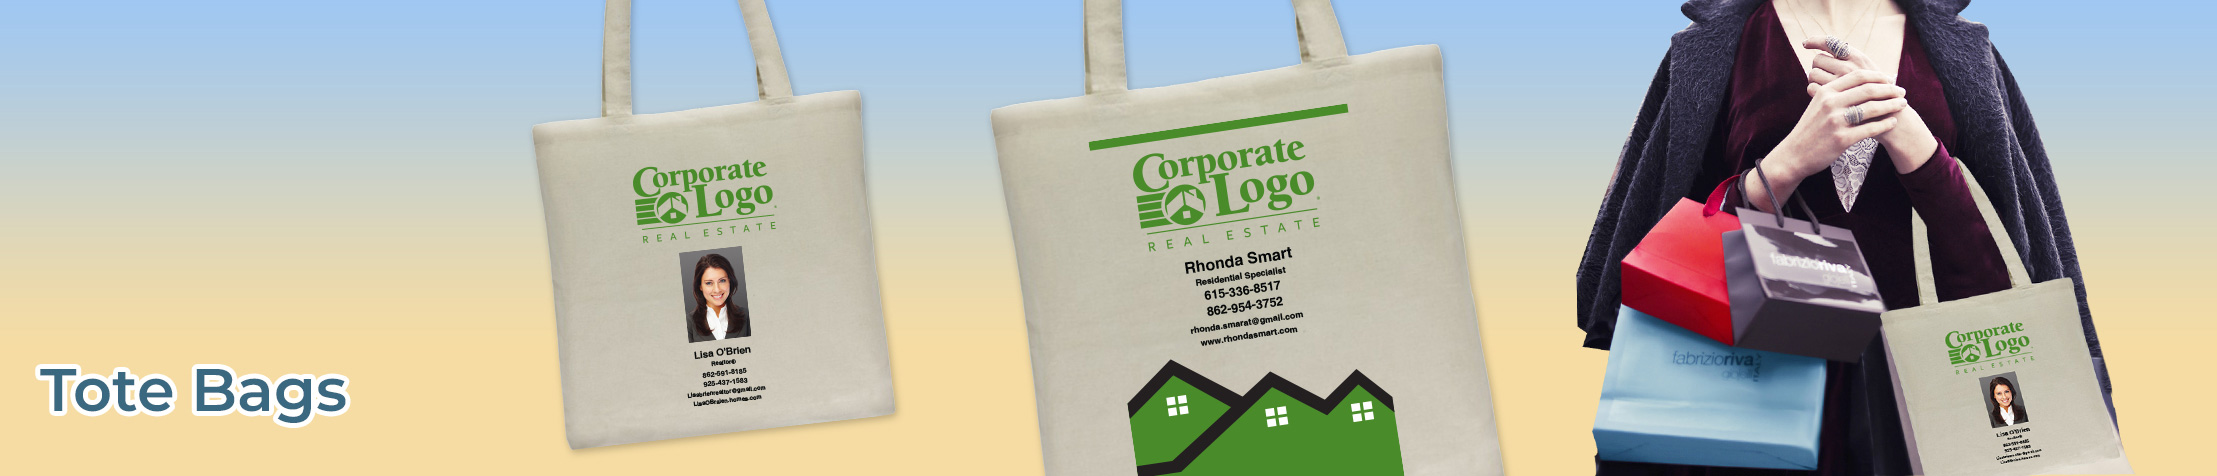 Better Homes and Gardens Real Estate Tote Bags - BHGRE  personalized realtor promotional products | BestPrintBuy.com